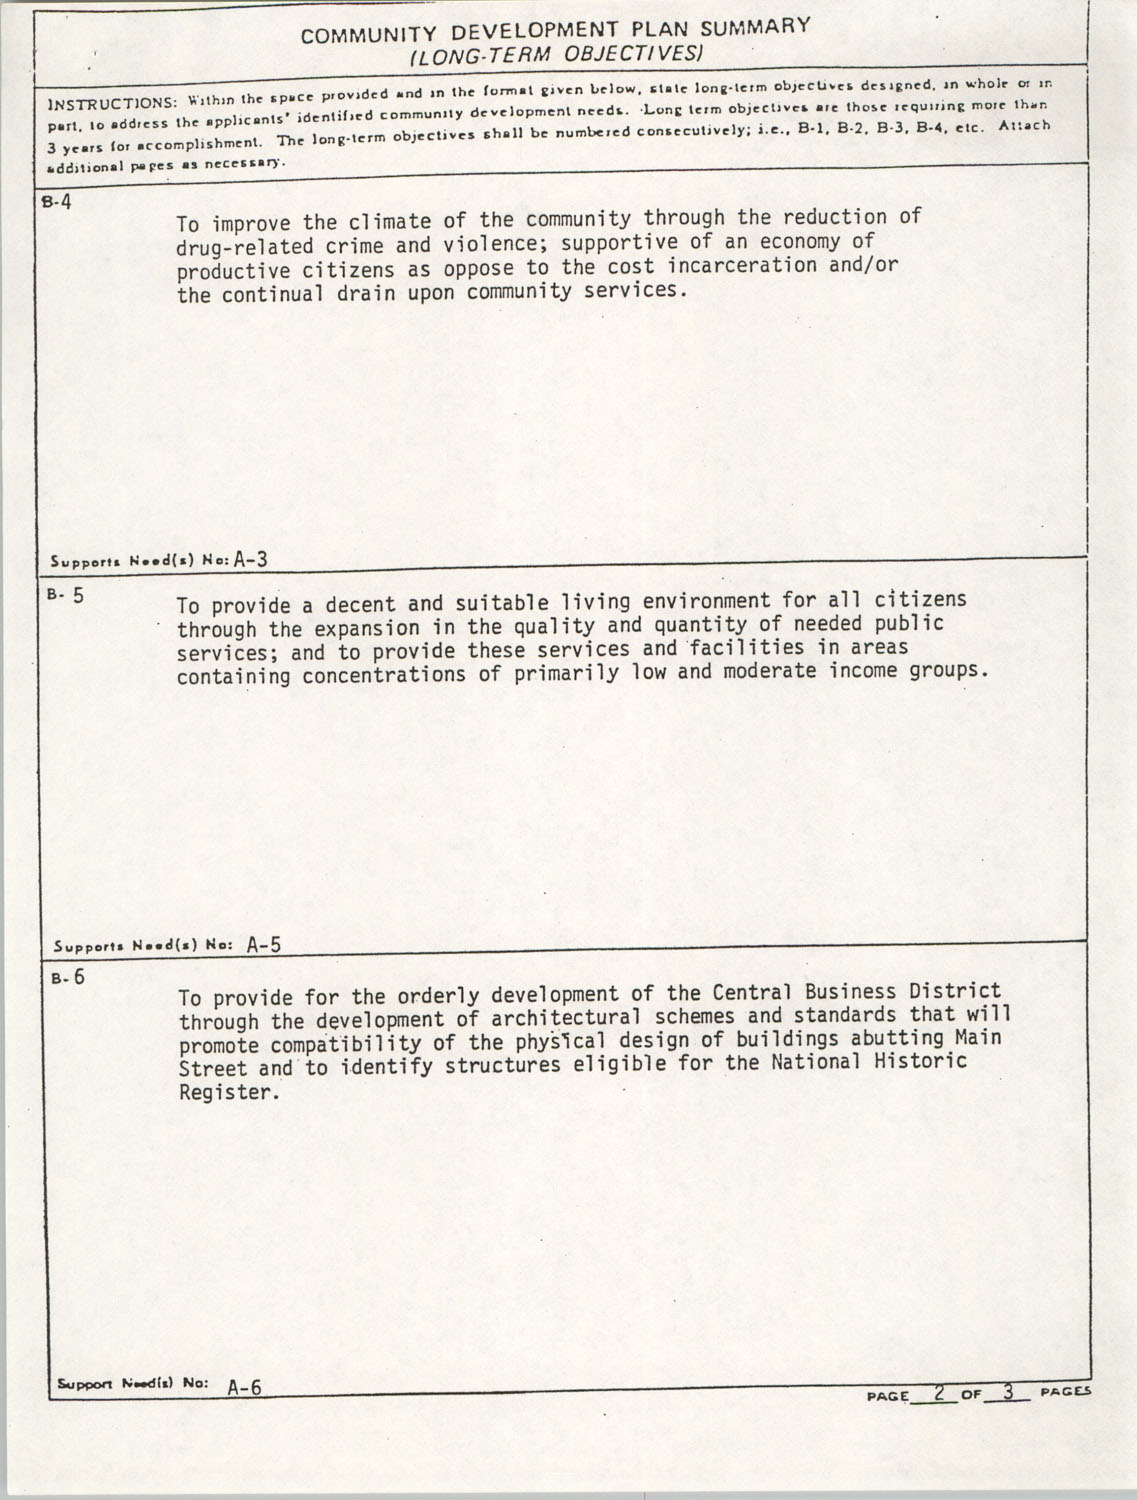 Community Development Act Columbia, South Carolina Materials, South Carolina,  Page 6